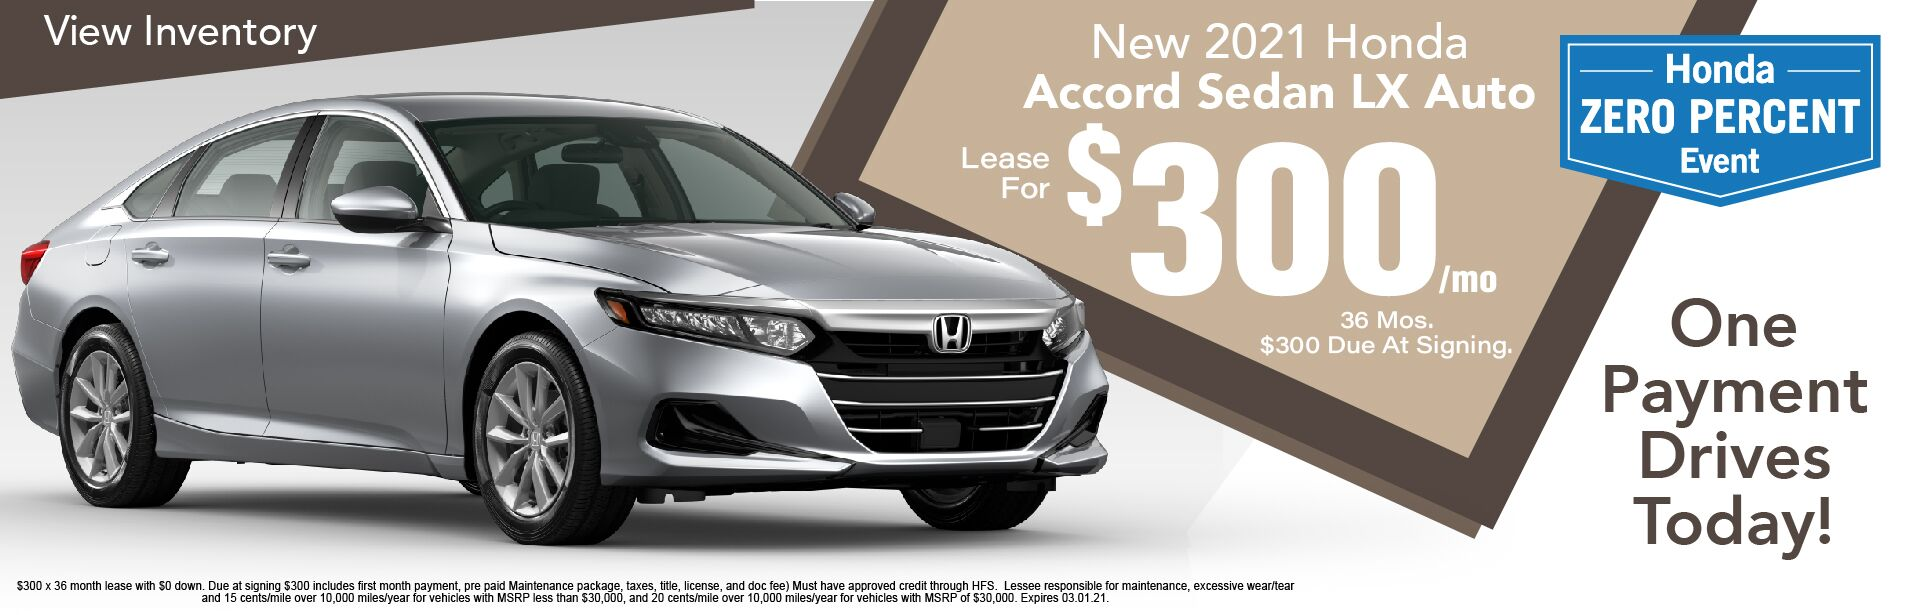 2021 Honda Accord LX Auto $300/Month Lease x 36 Months